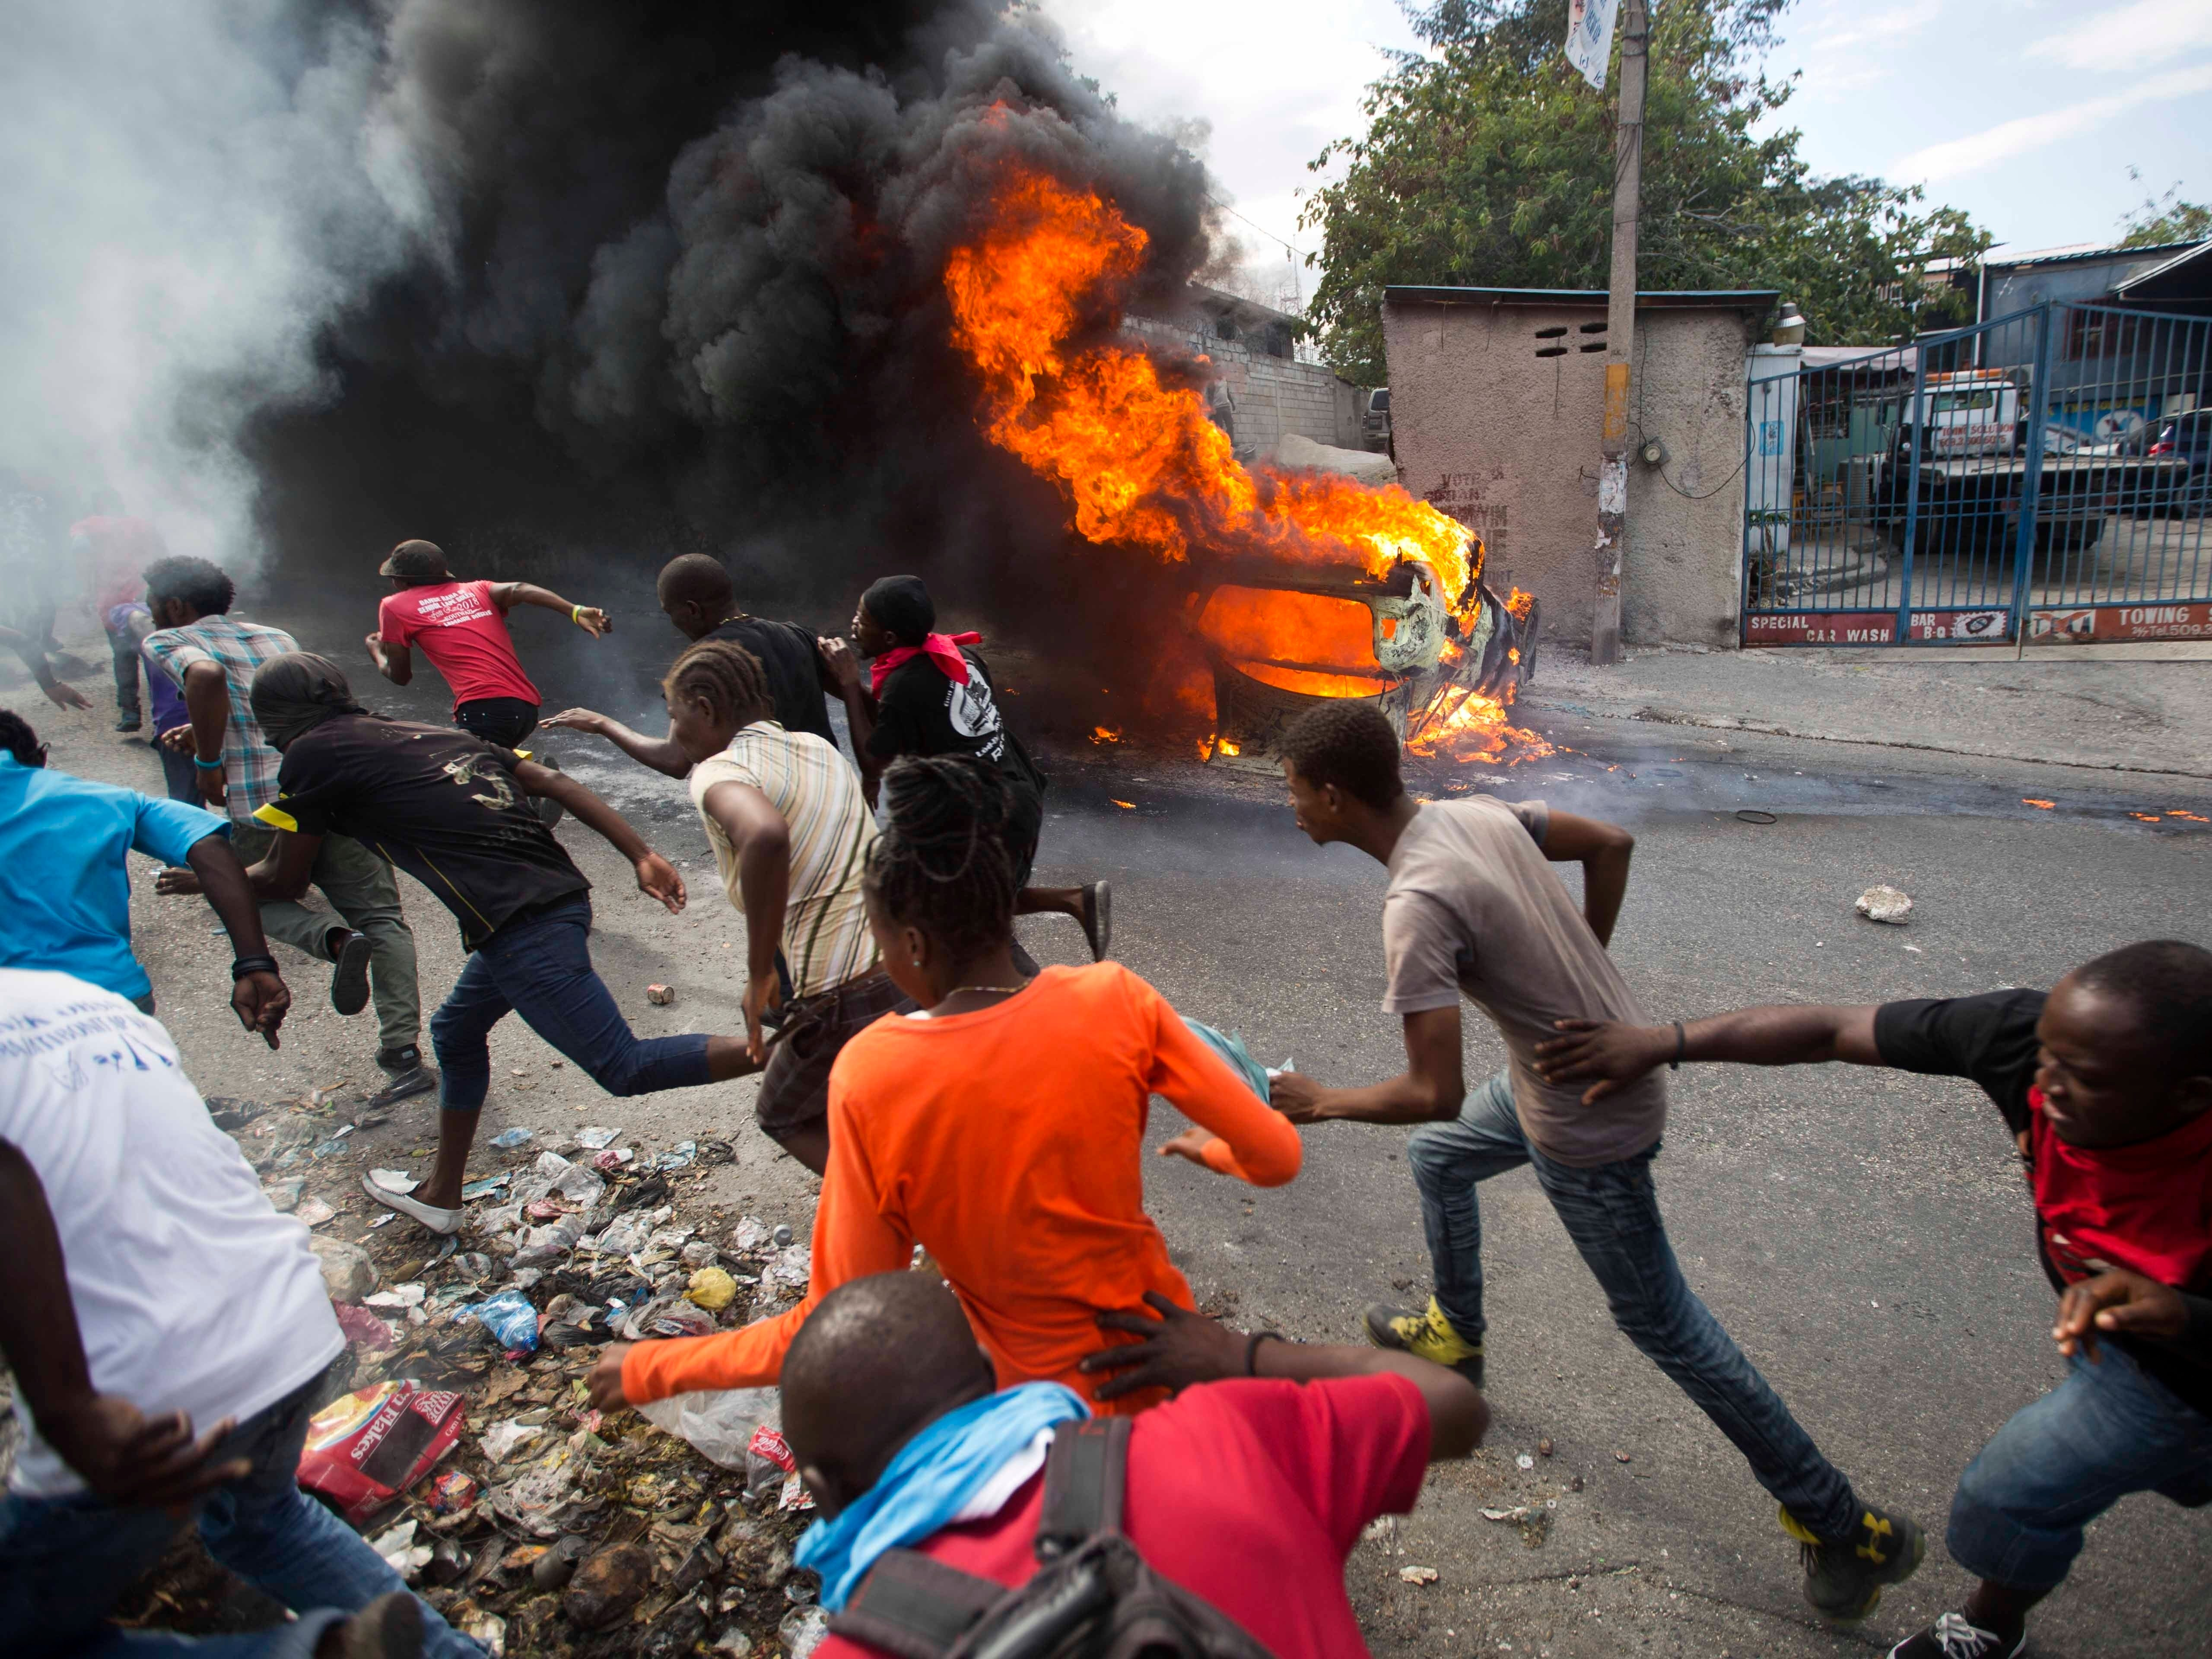 Demonstrators run away from police who are shooting in their direction as a car burns during a protest demanding the resignation of Haitian President Jovenel Moise in Port-au-Prince, Haiti, Tuesday, Feb. 12, 2019. Protesters are angry about skyrocketing inflation and the government's failure to prosecute embezzlement from a multi-billion Venezuelan program that sent discounted oil to Haiti.